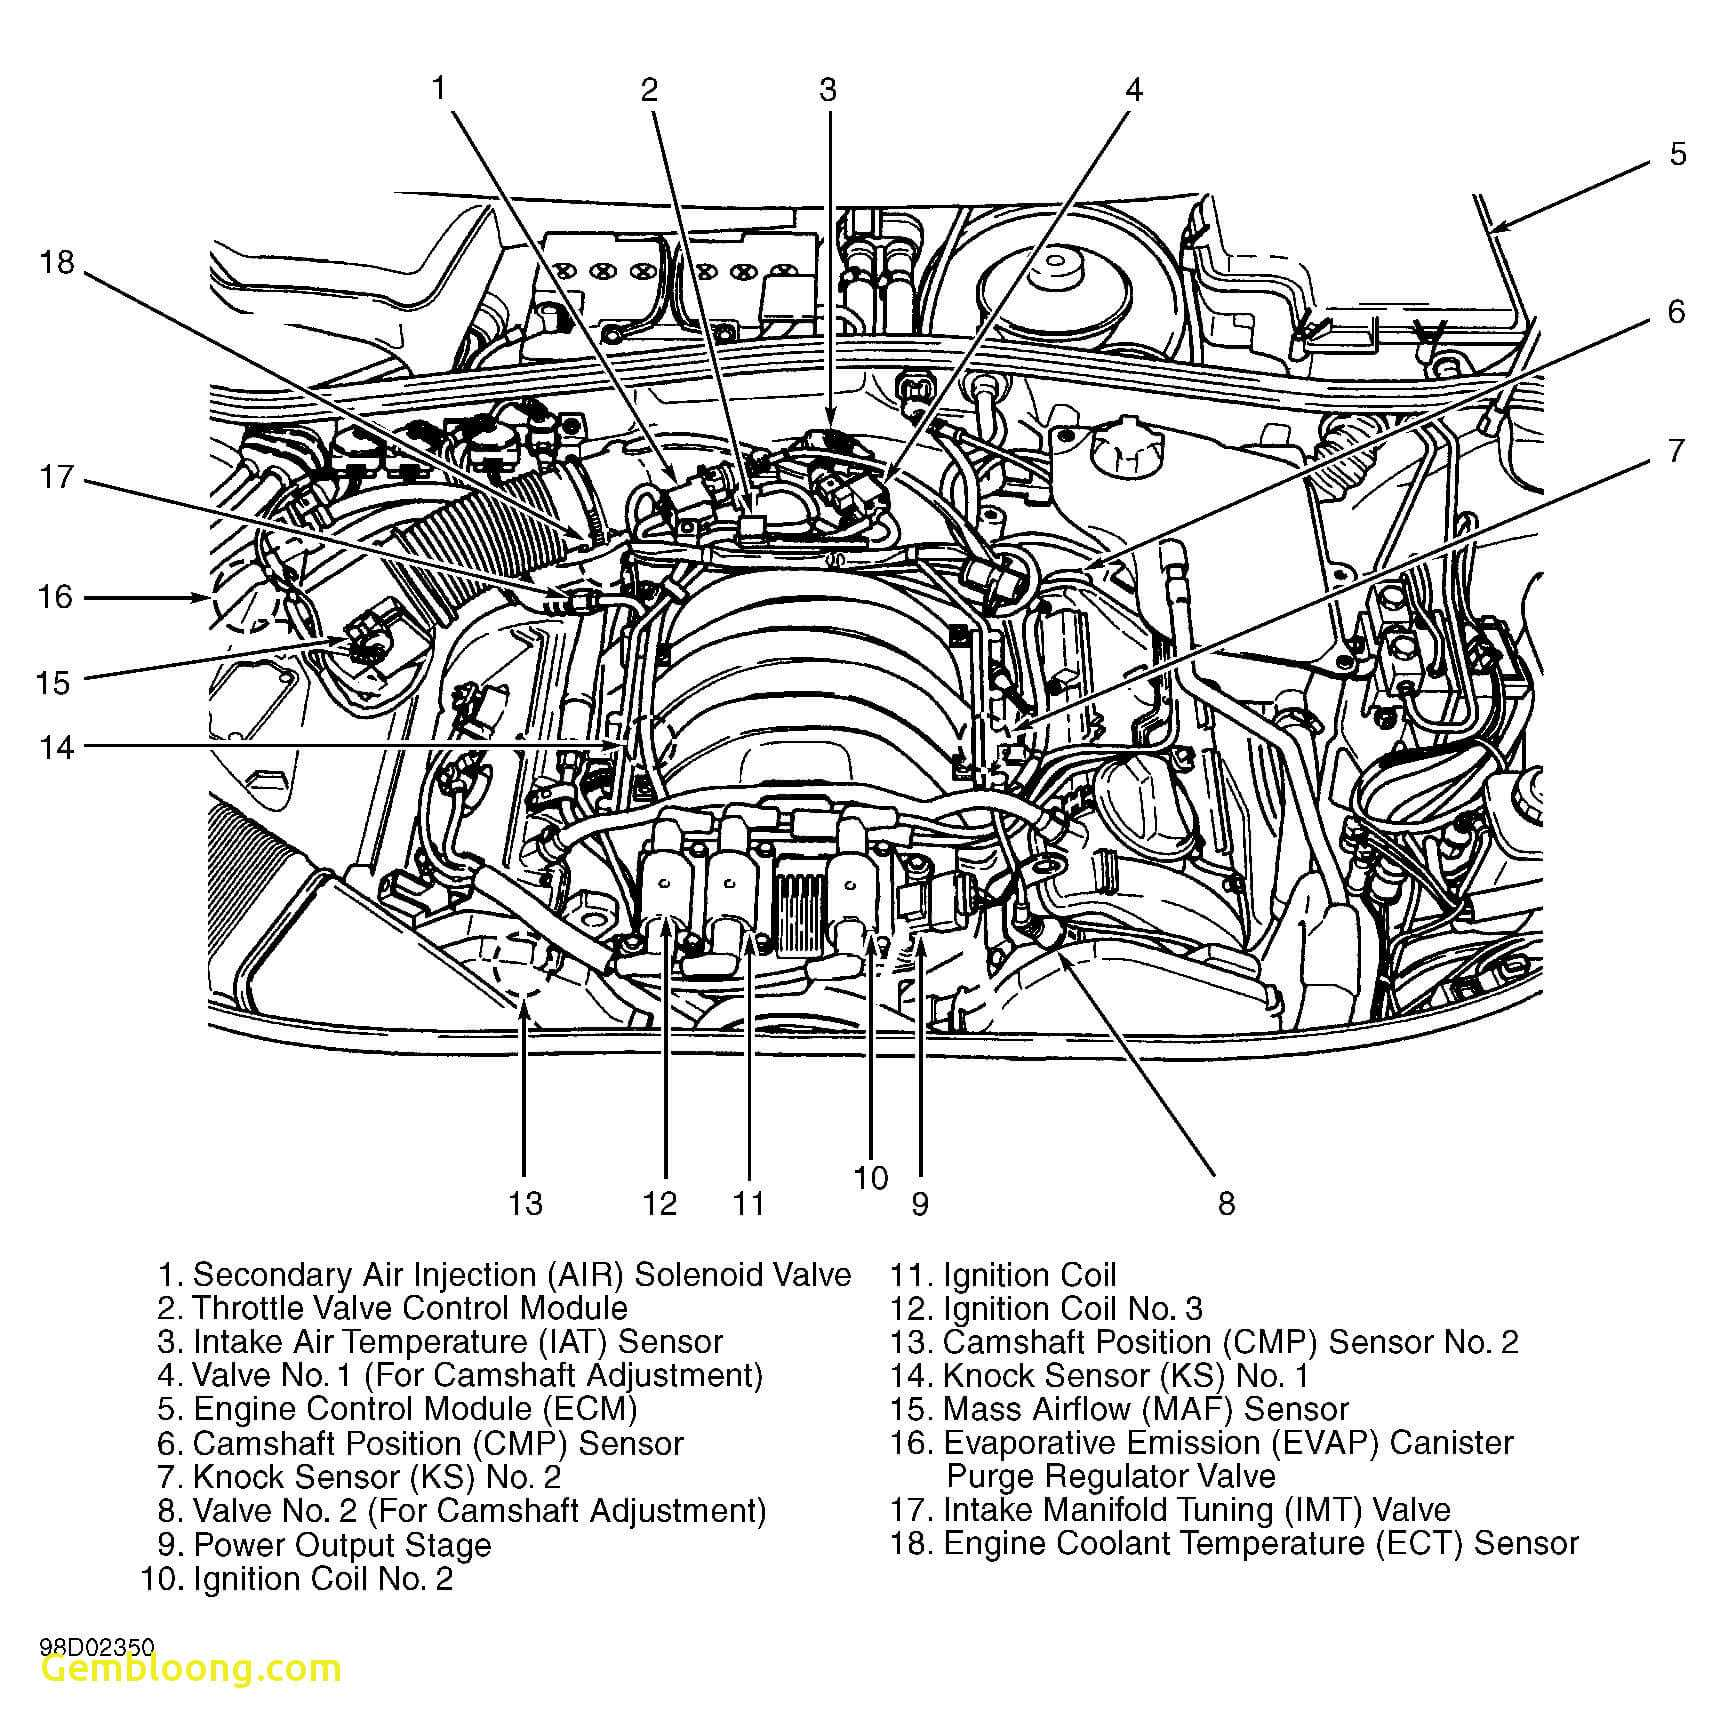 1995 volkswagen jetta engine diagram wiring schematic 1995 Vw Jetta Engine Diagram vw jetta engine diagram wiring diagram